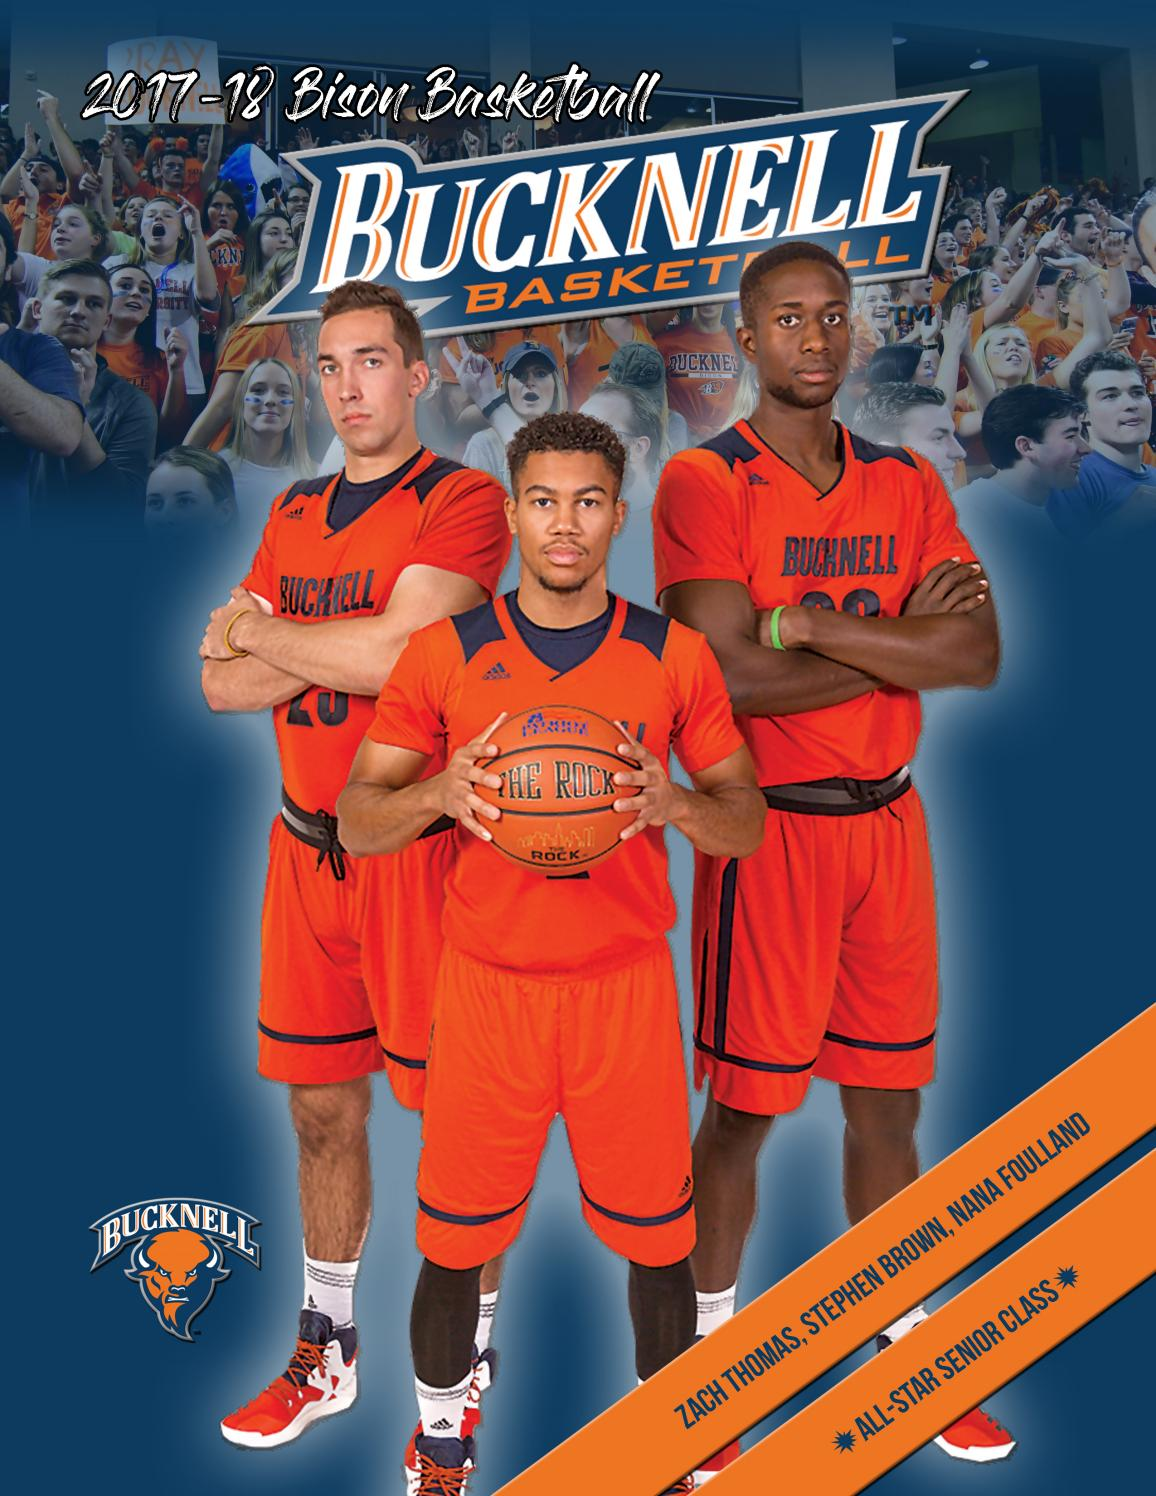 2017-18 Bucknell Men's Basketball Media Guide by Bucknell University - issuu